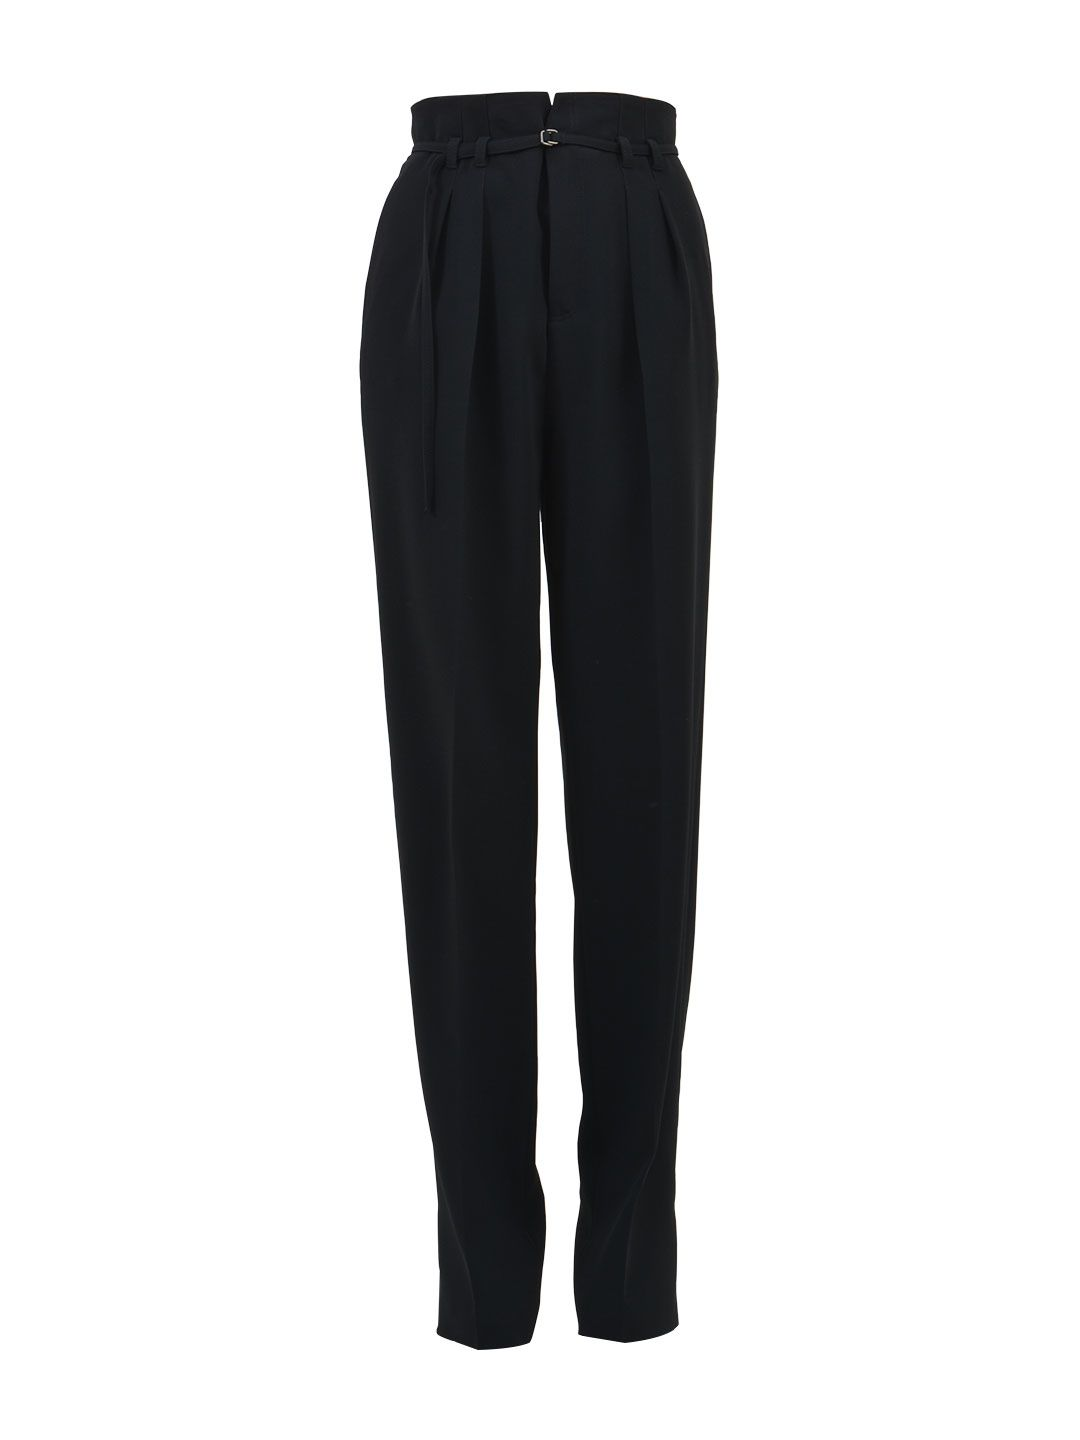 RED Valentino High-waist Palazzo Trousers